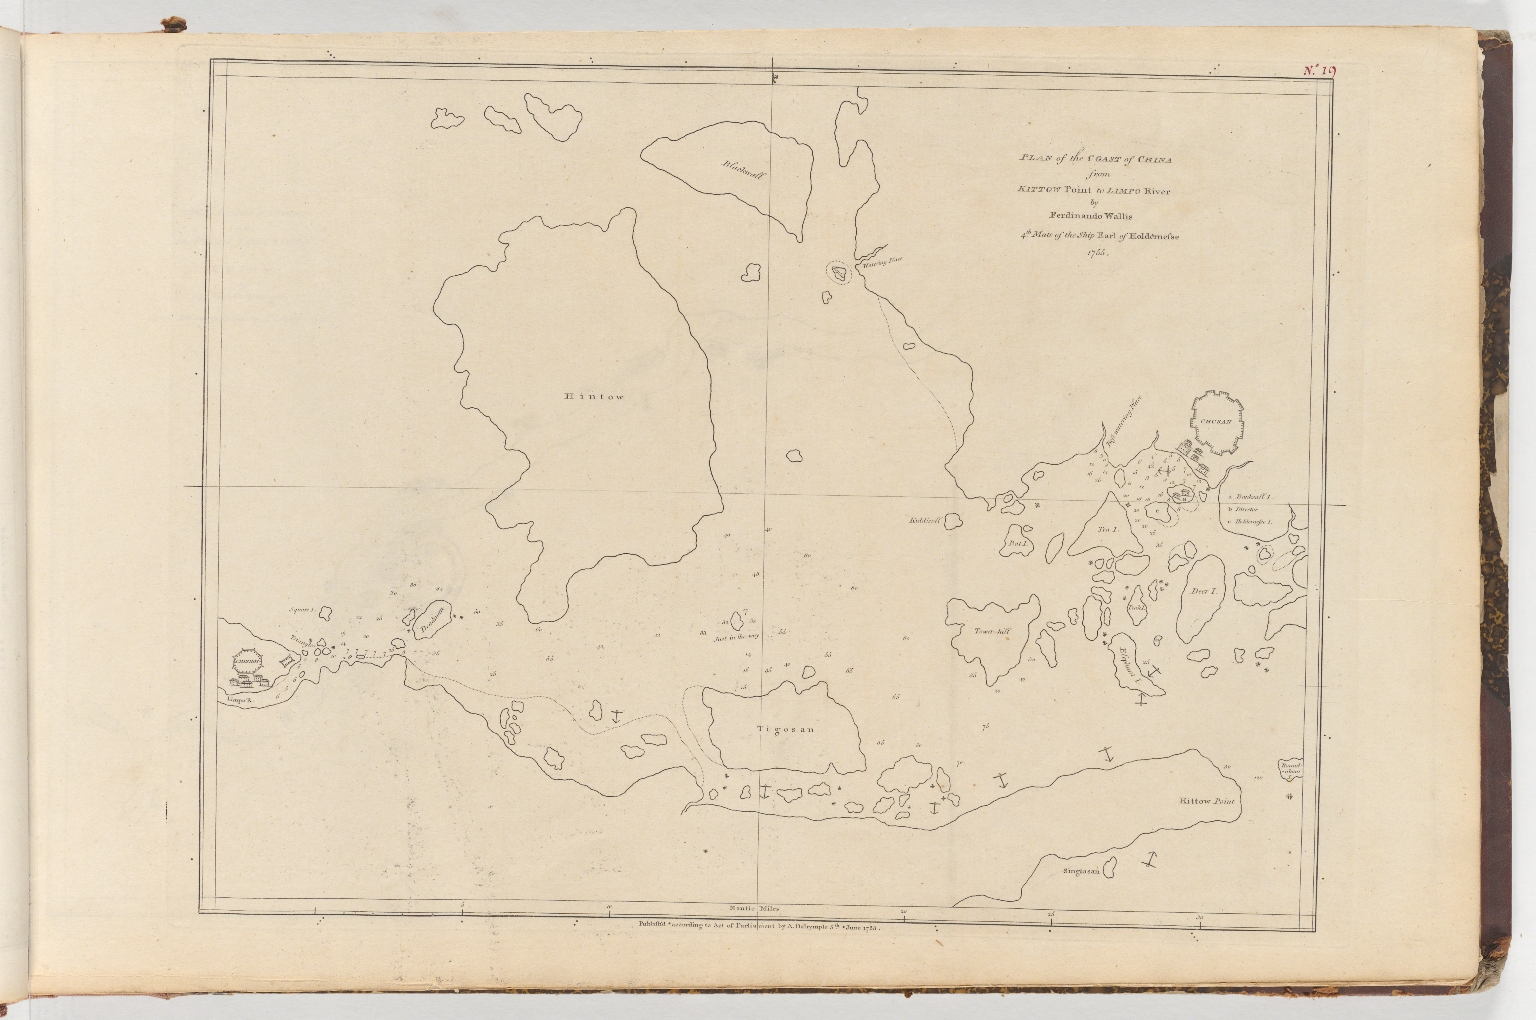 Plan of the coast of China from Kittow point to Limpo River